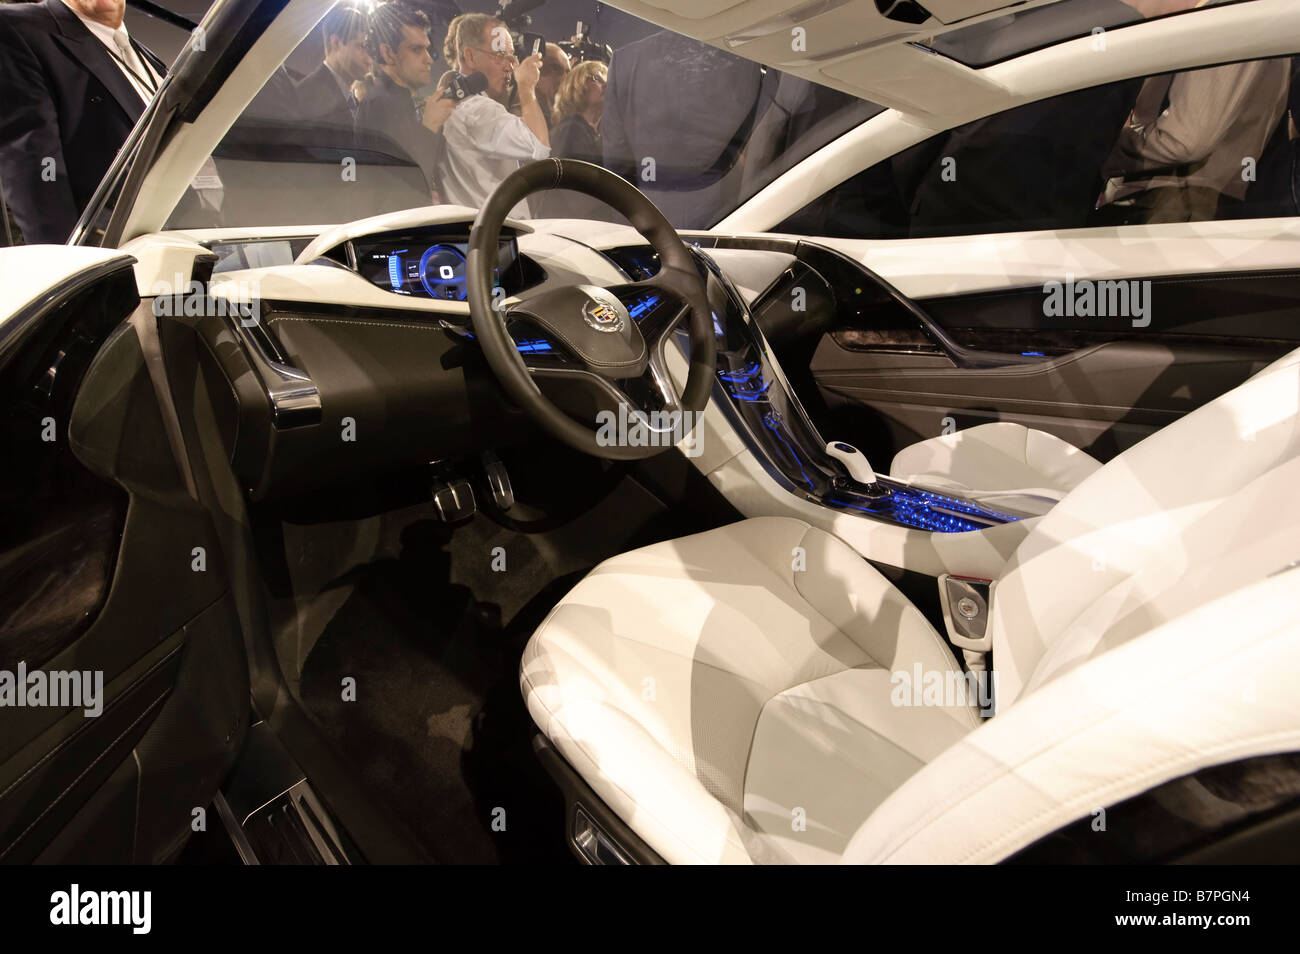 Gm car interior stock photos gm car interior stock images alamy interior of the cadillac converj hybrid concept car at the 2009 north american international auto show publicscrutiny Image collections